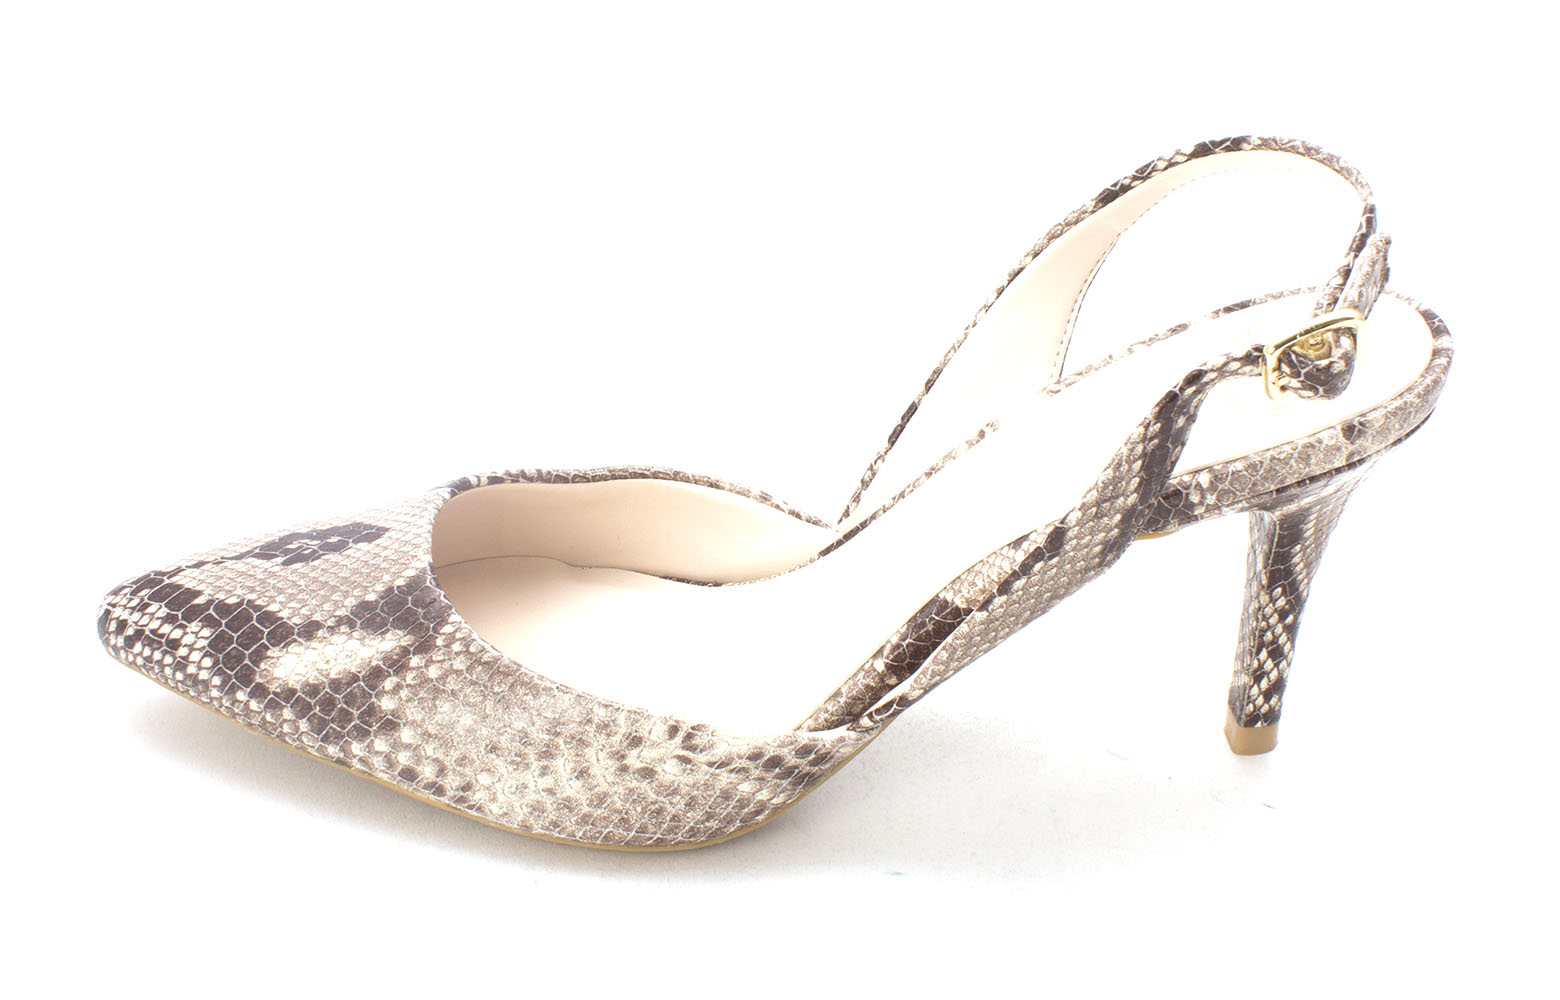 Cole Haan Womens 14A4057 Pointed Toe SlingBack Dorsay Pumps Roccia Size 6.0